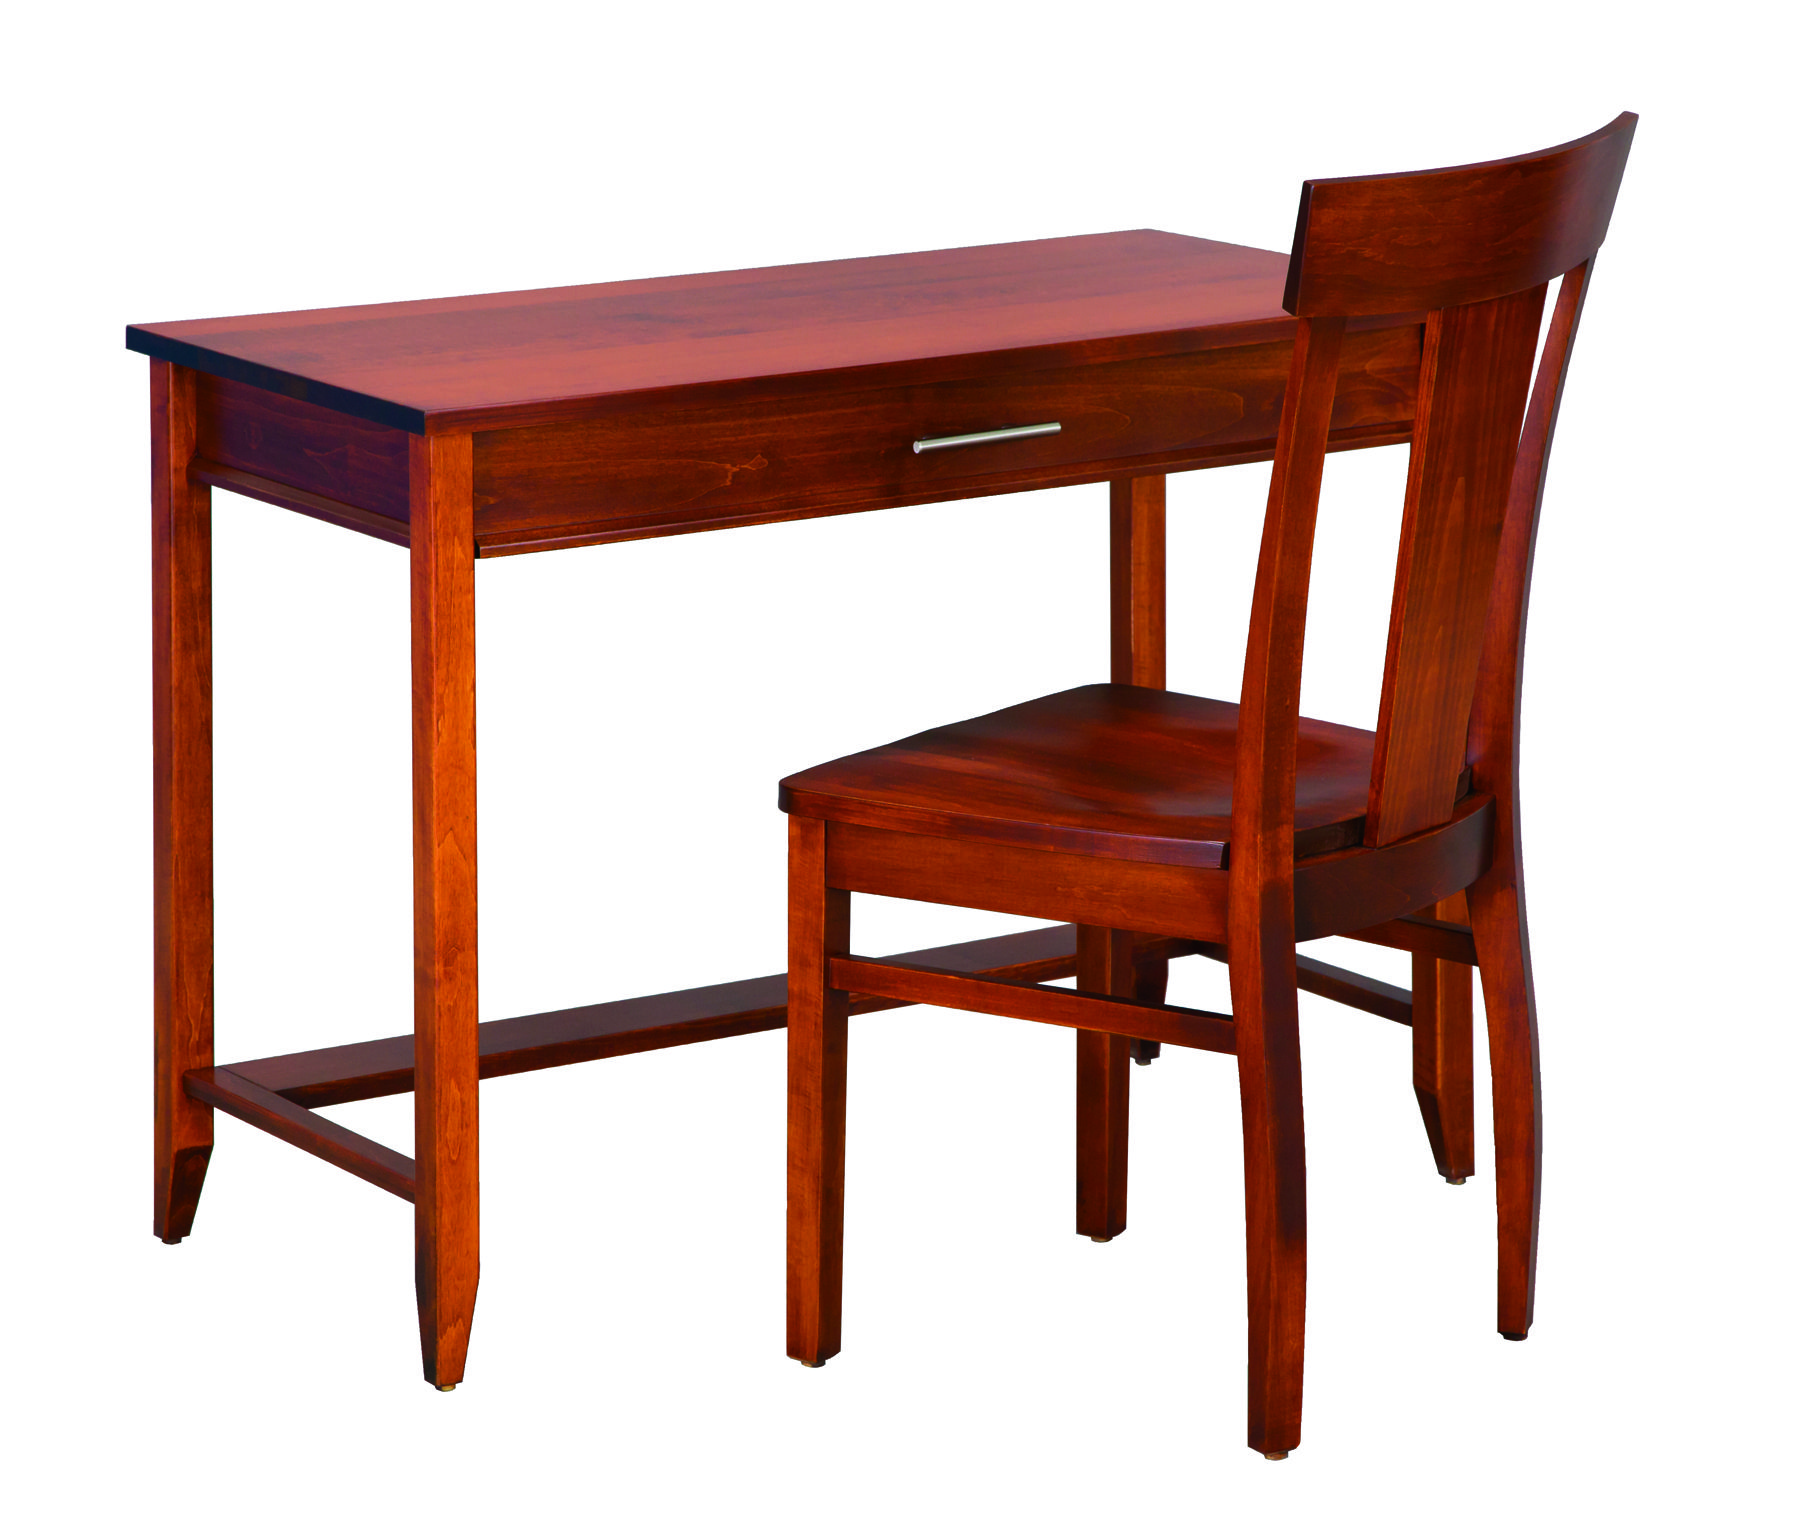 New Contemporary Writing Desk Handcrafted From Solid Hardwoods No Particle Boards Or Composites Country Lane Fu Furniture Lane Furniture Furniture Design